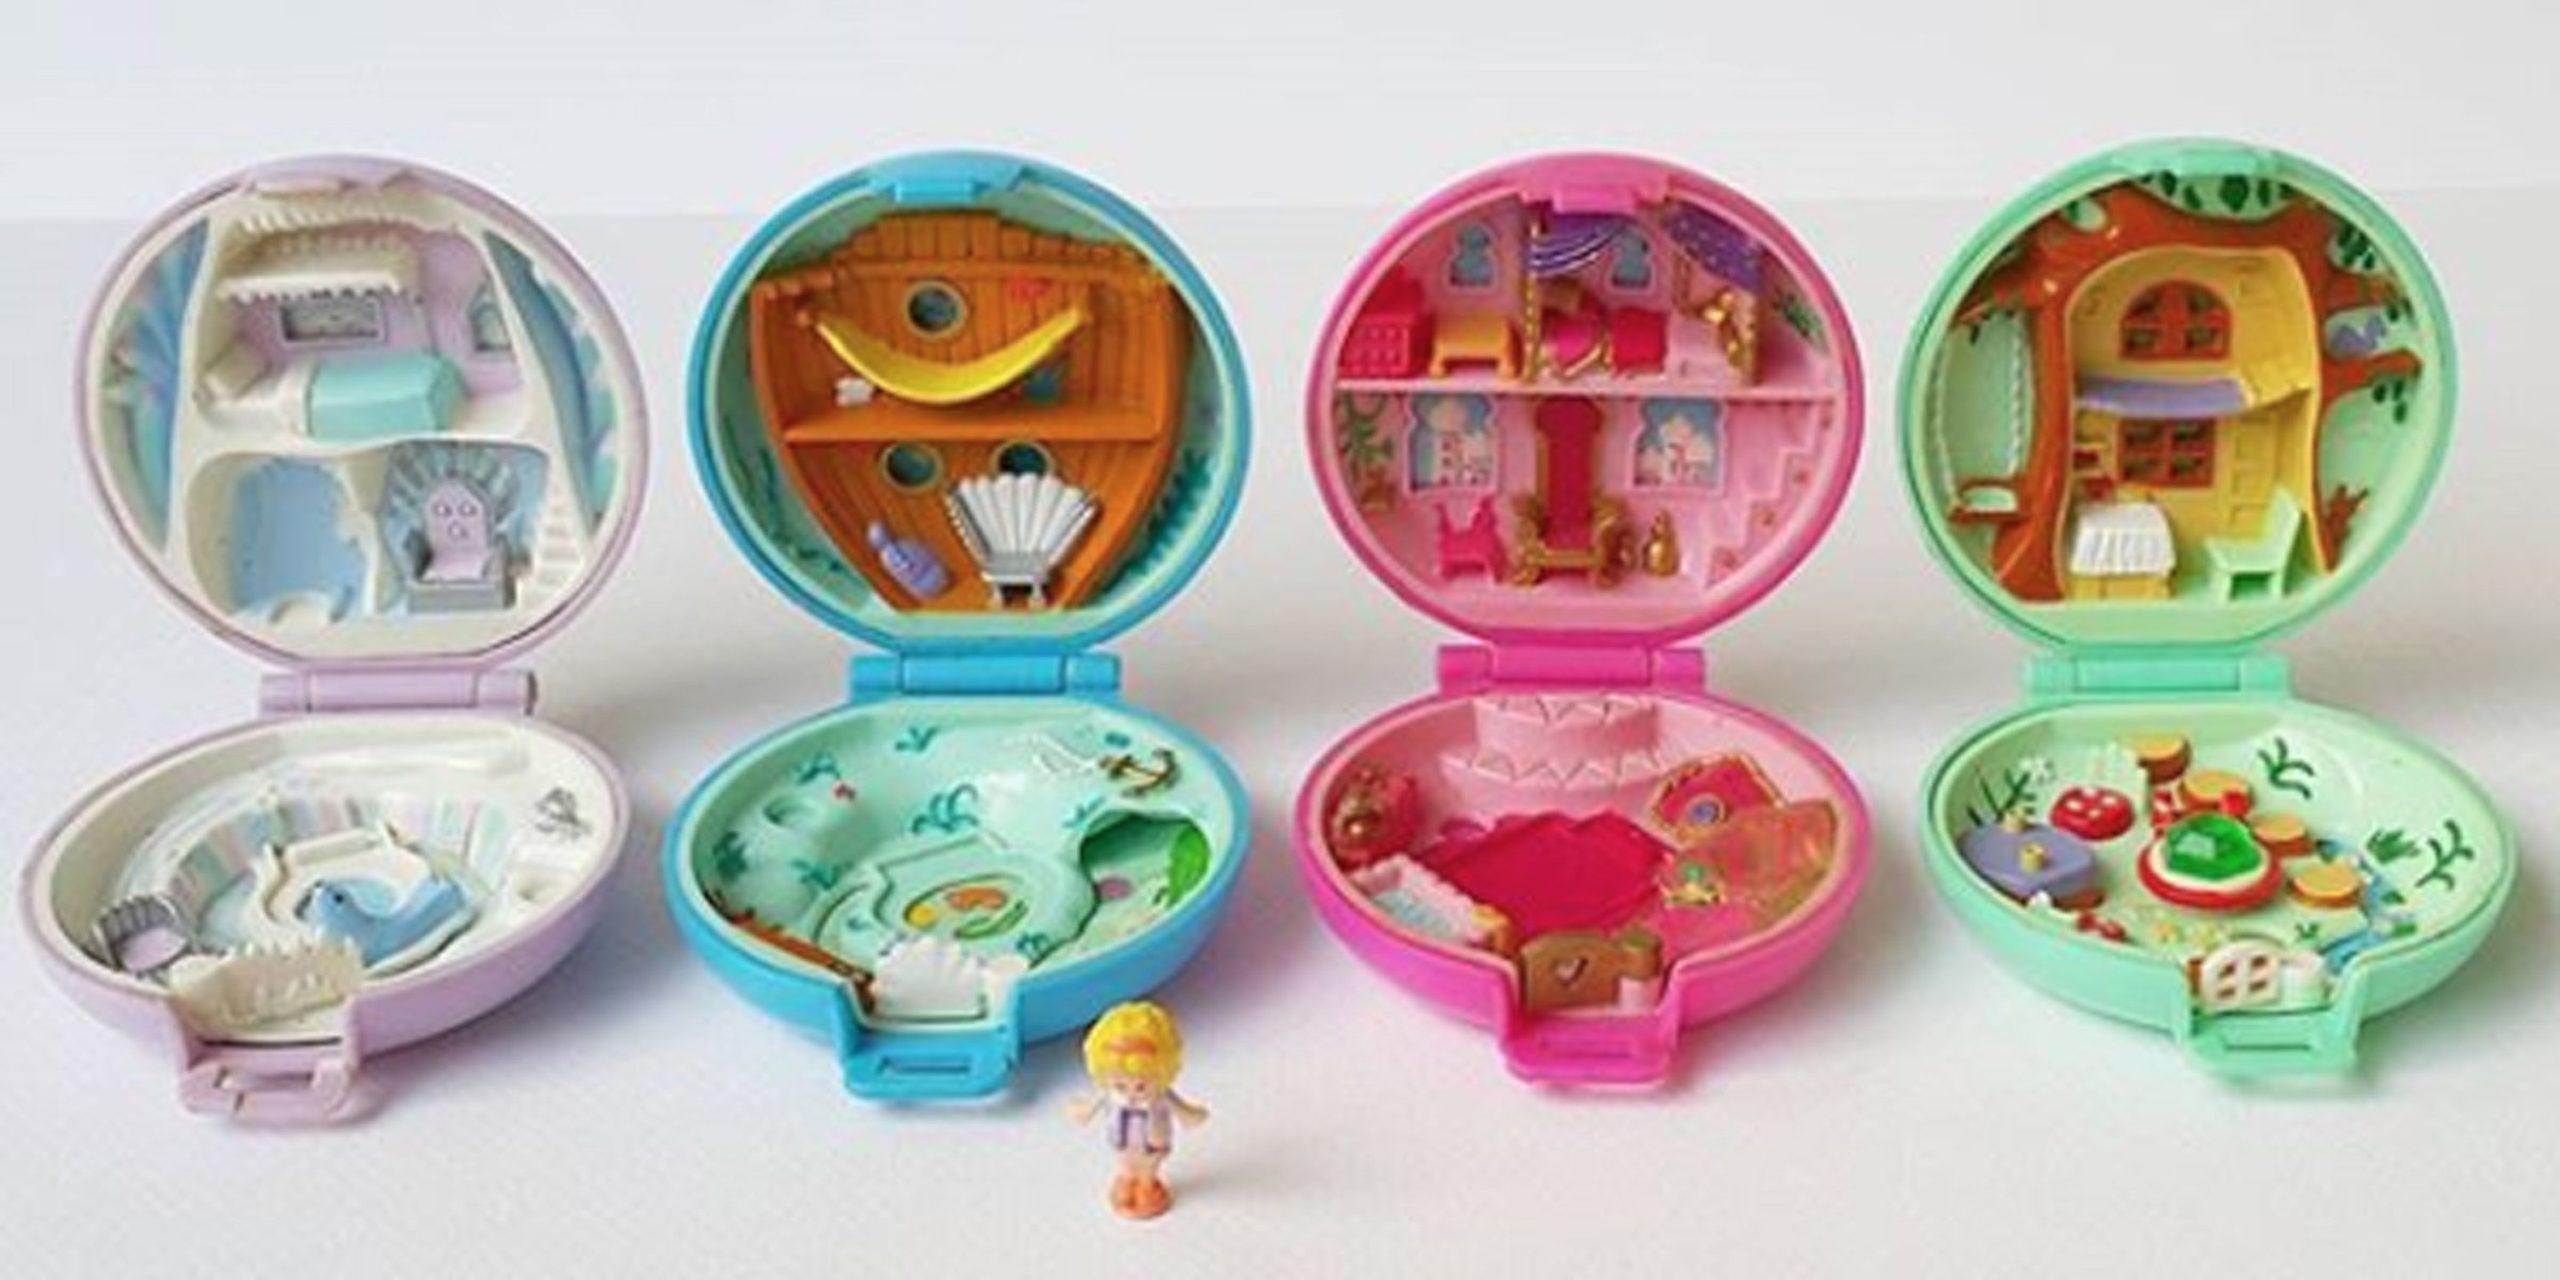 Most Popular Toys of the 90s: Polly Pocket